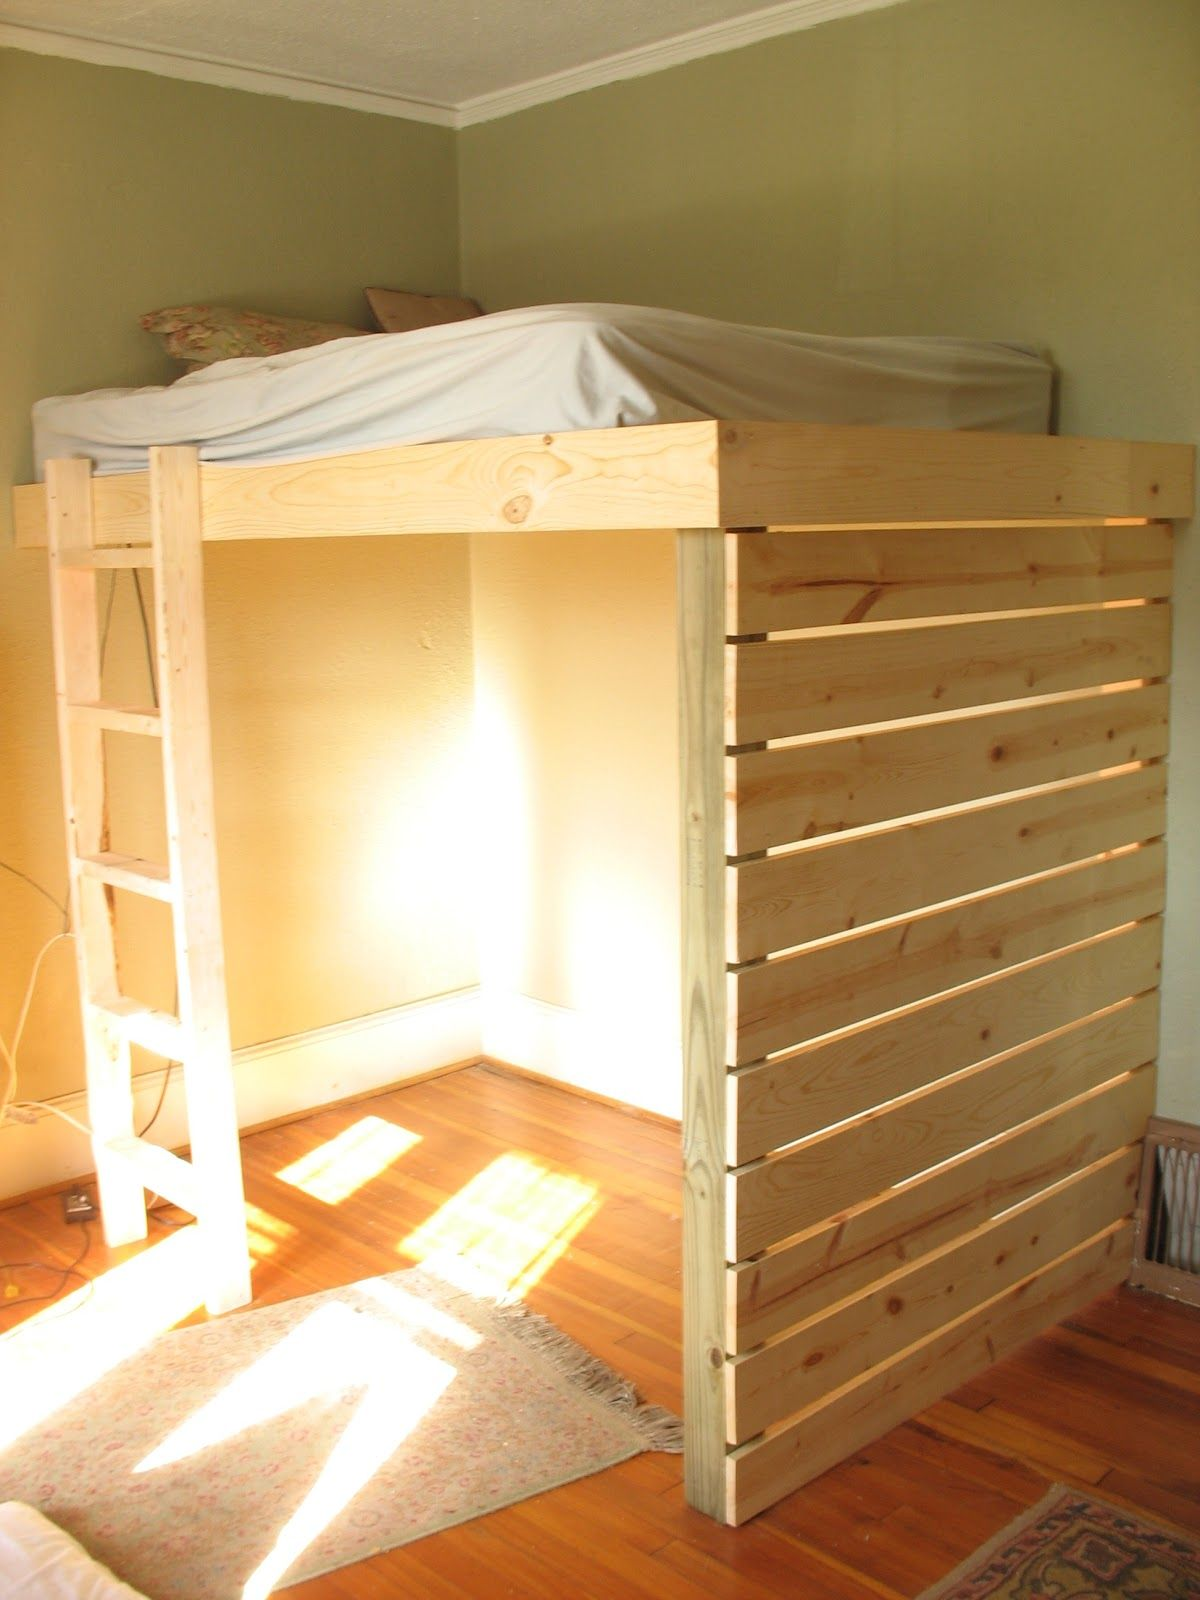 Toddler loft bed ideas  Google Image Result for bpspotpuVeCNTZM